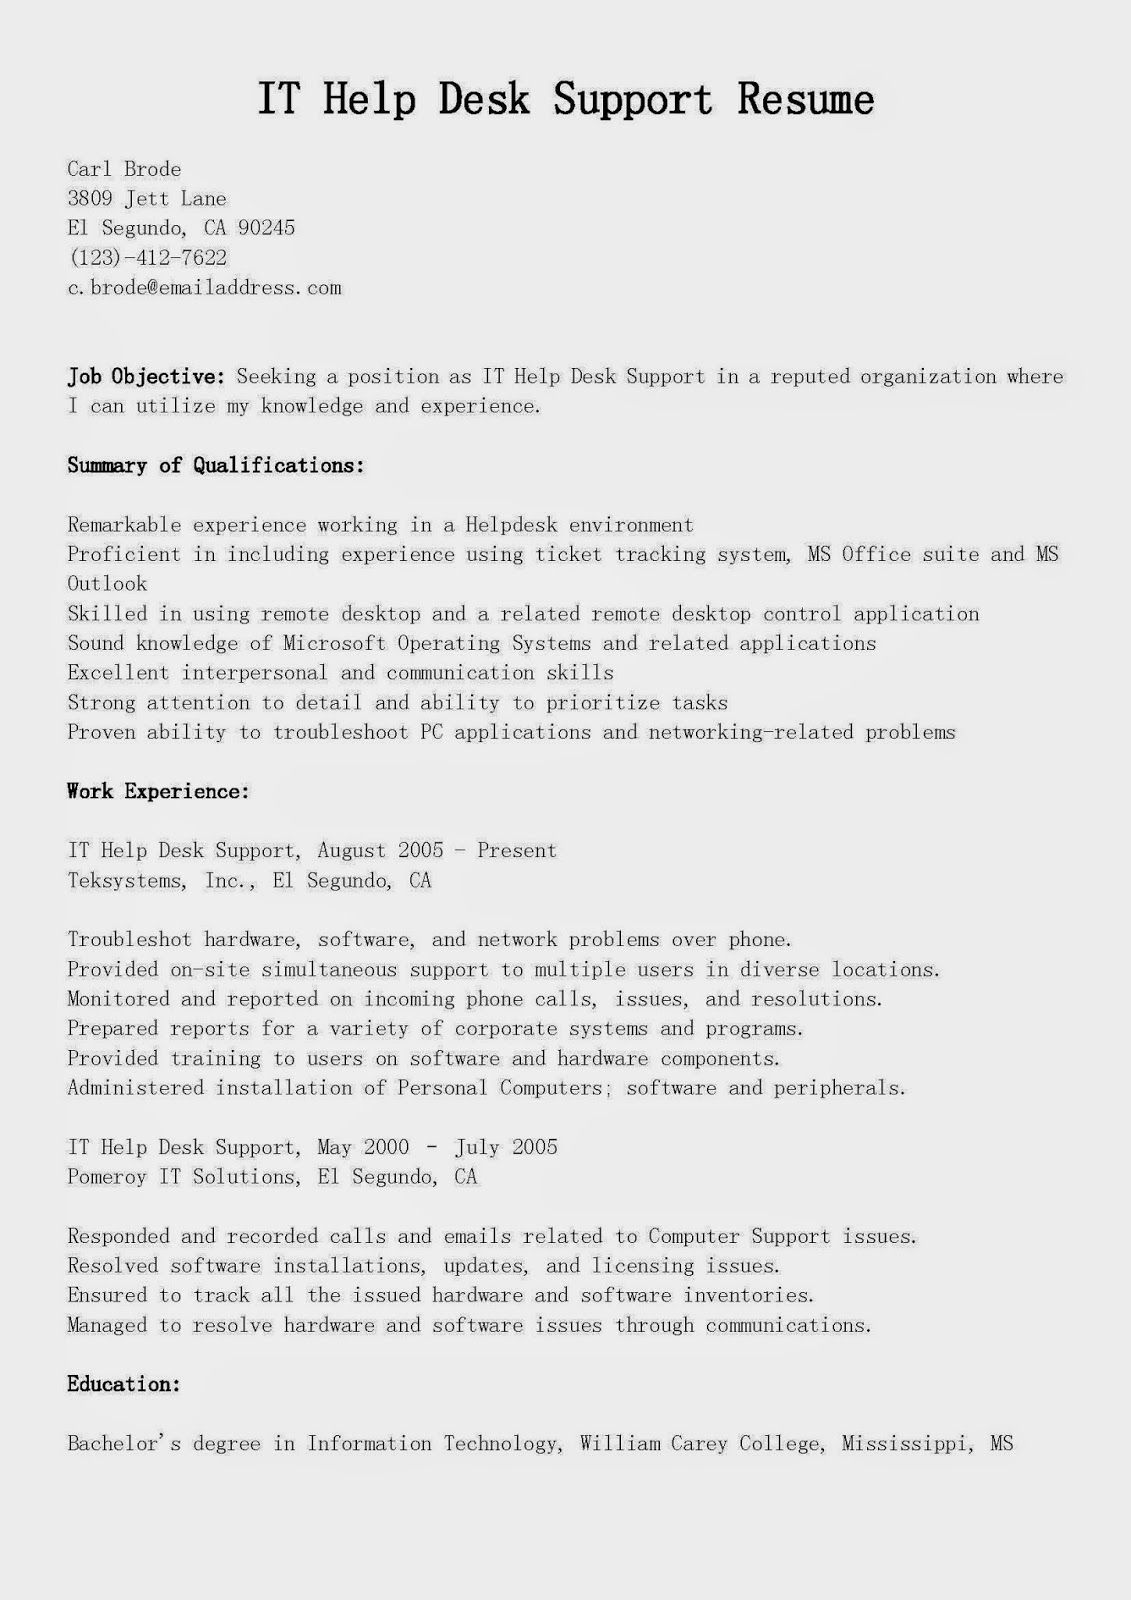 Resume Templates Help (6) TEMPLATES EXAMPLE TEMPLATES